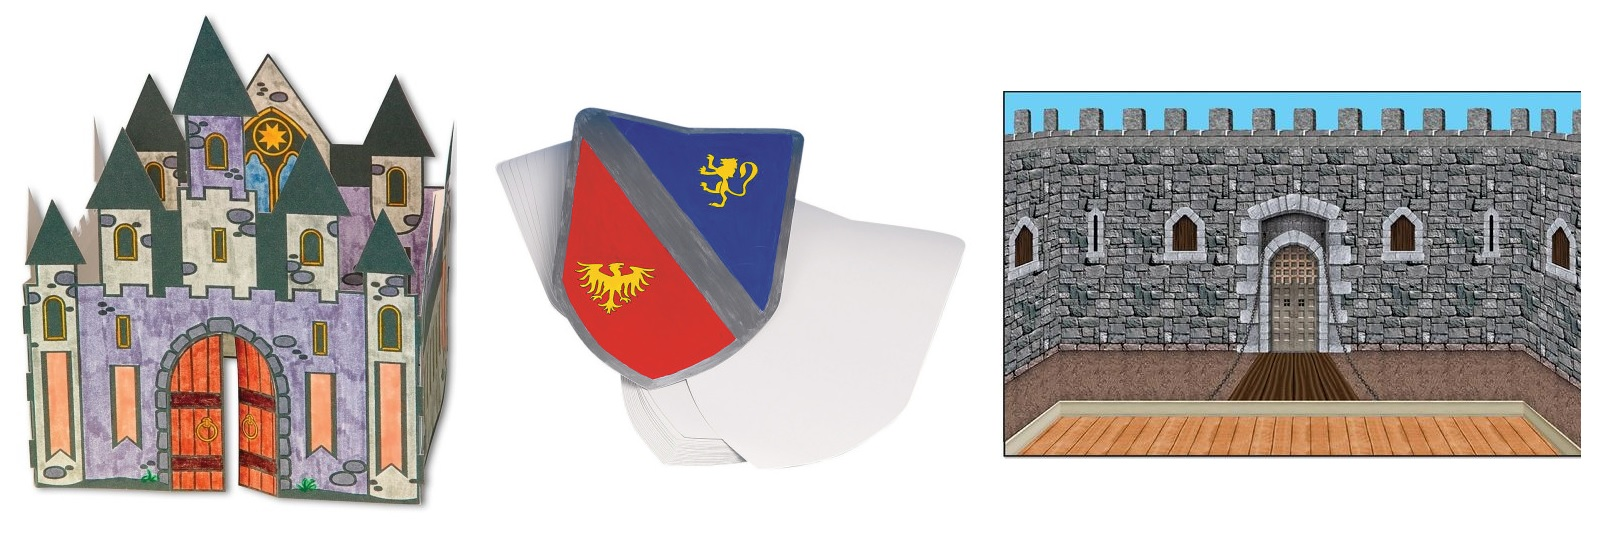 Mighty Fortress Vbs Craft Ideas